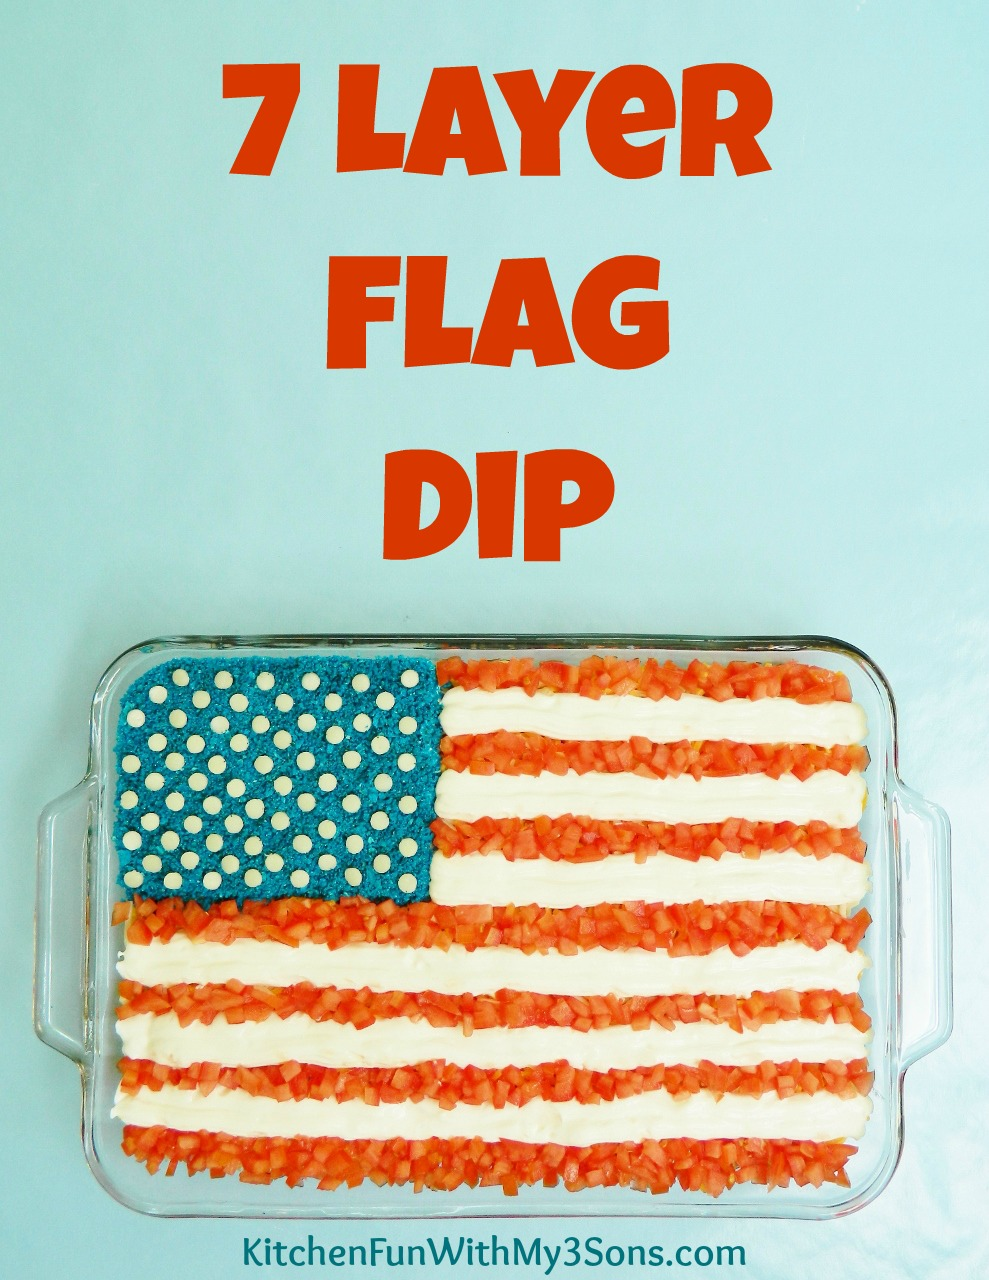 7-Layer-Mexican-Flag-Dip-1